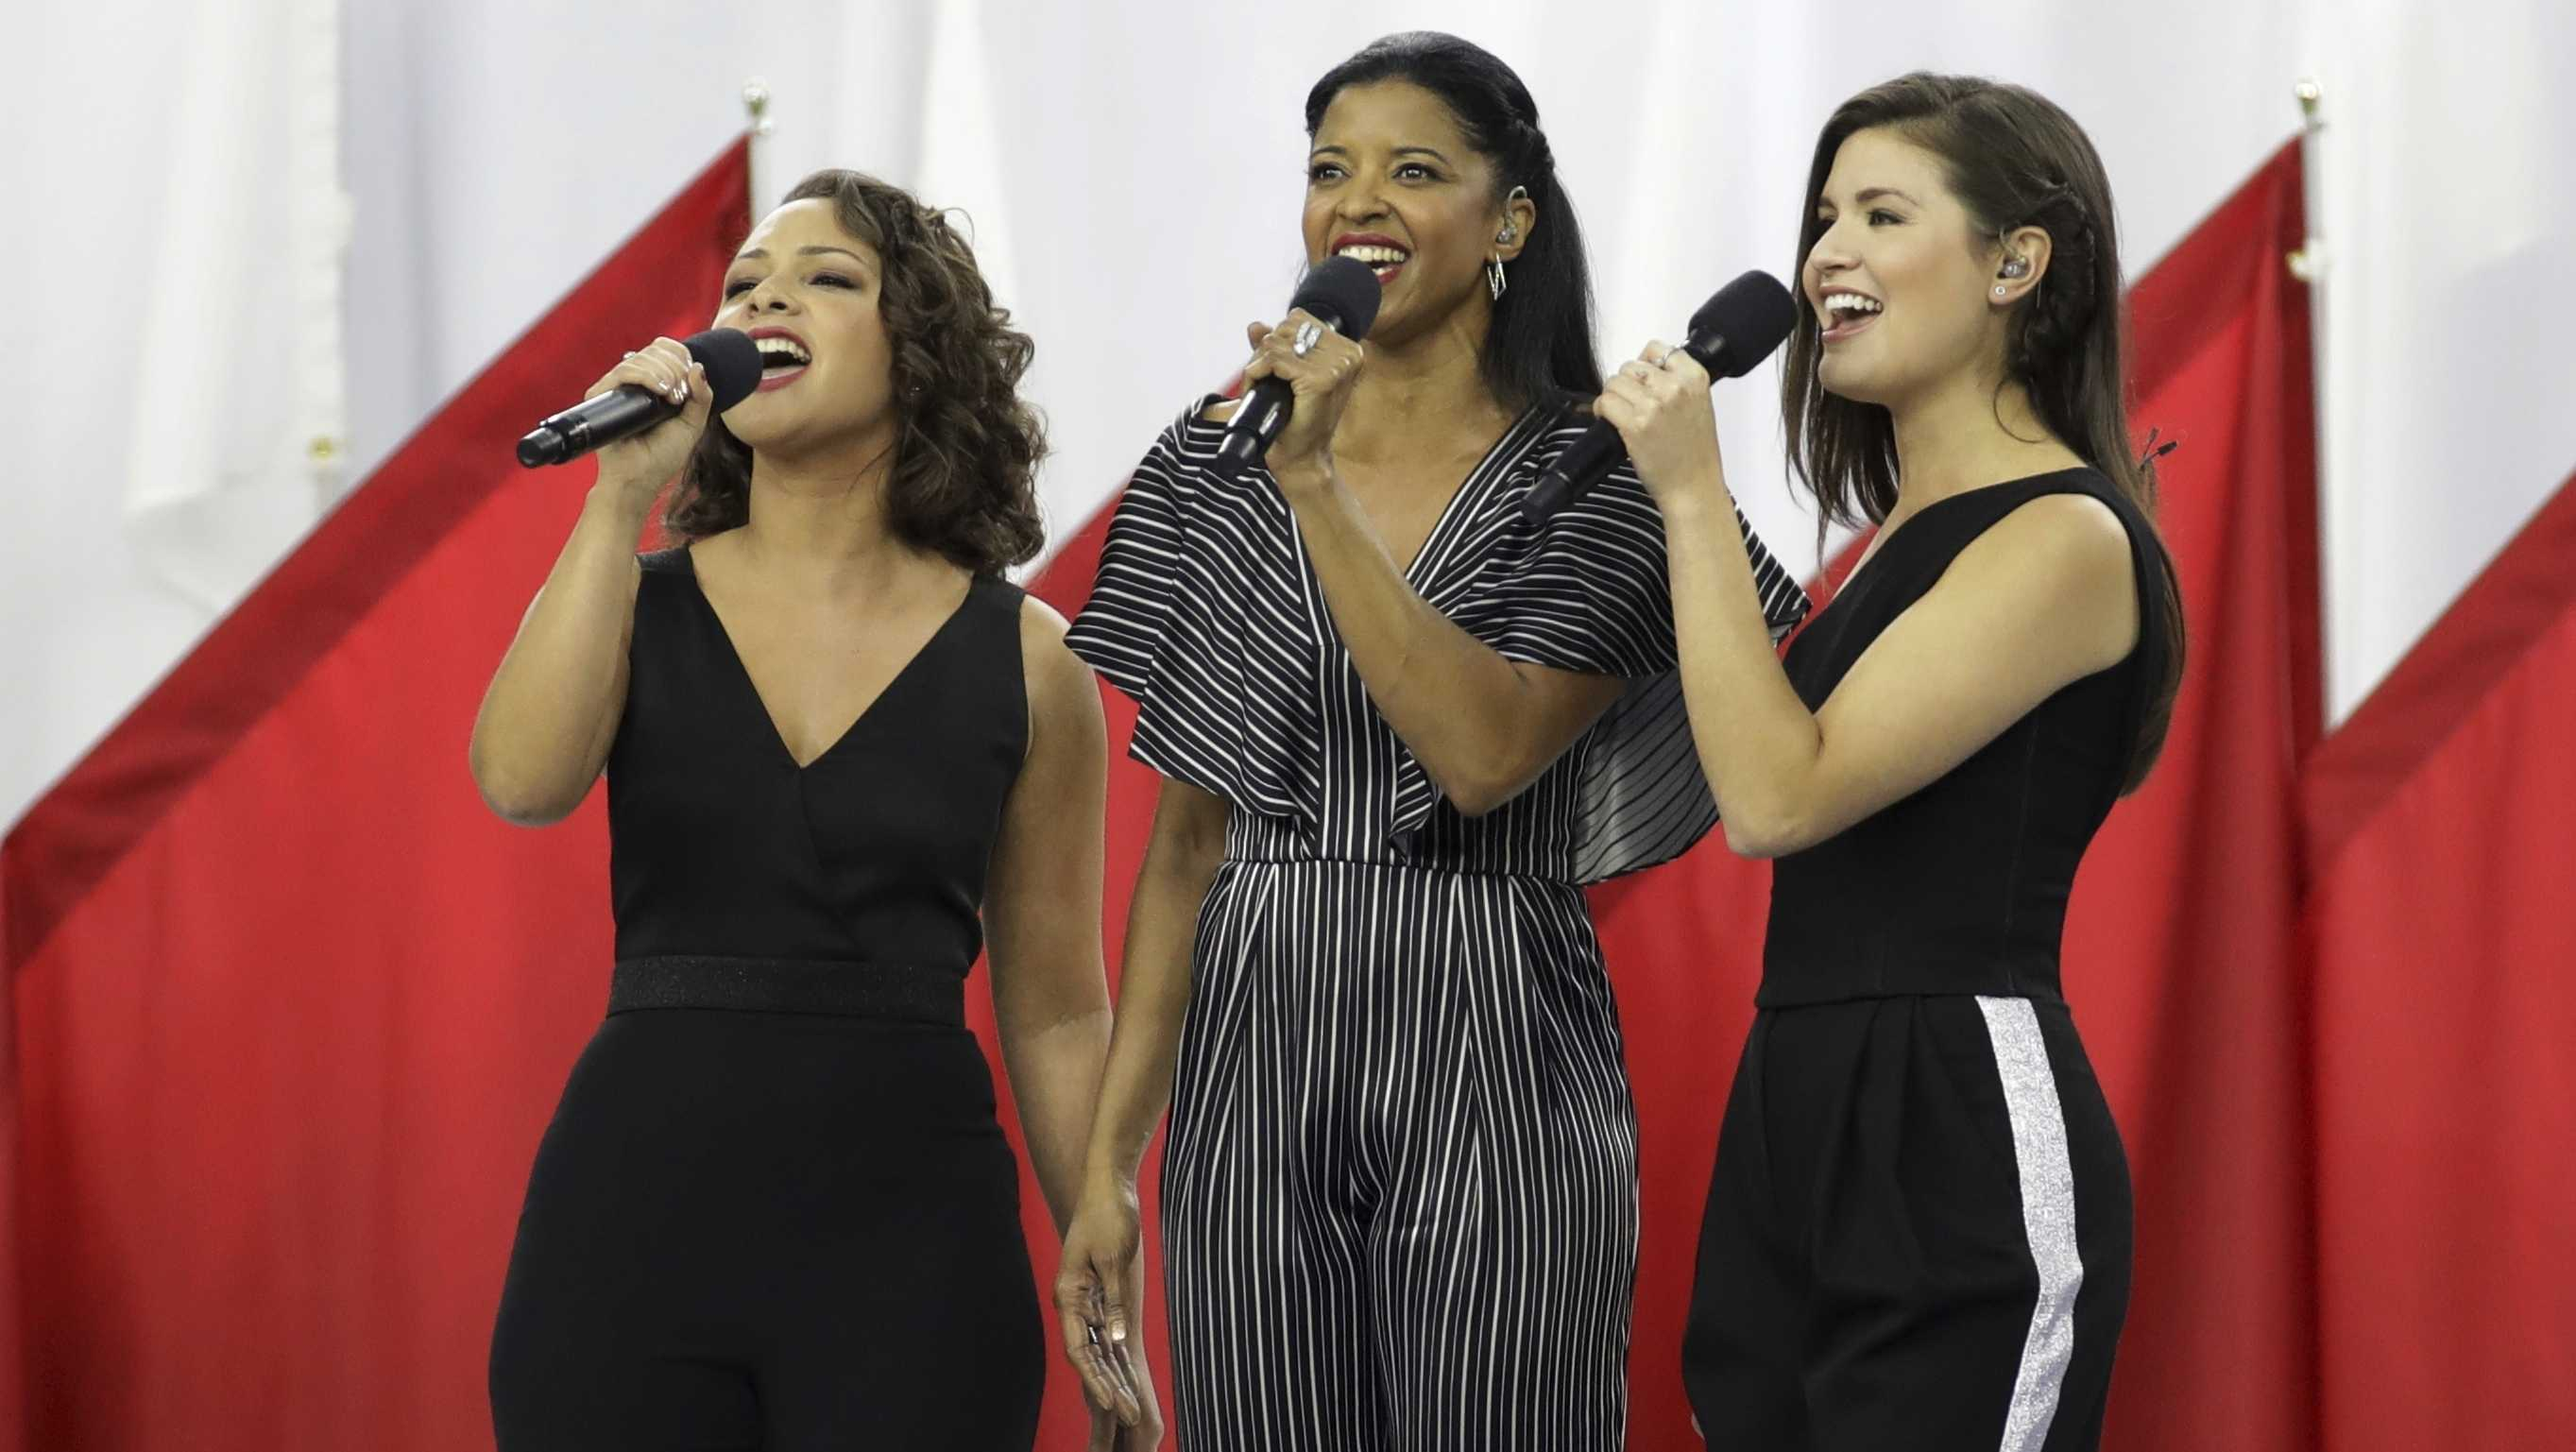 "Singers of the cast of Hamilton, Phillipa Soo, right, Rene Elise Goldsberry, center, and Jasmine Cephas Jones, sing ""God Bless America"", before the NFL Super Bowl 51 football game between the New England Patriots and the Atlanta Falcons, Sunday, Feb. 5, 2017, in Houston."